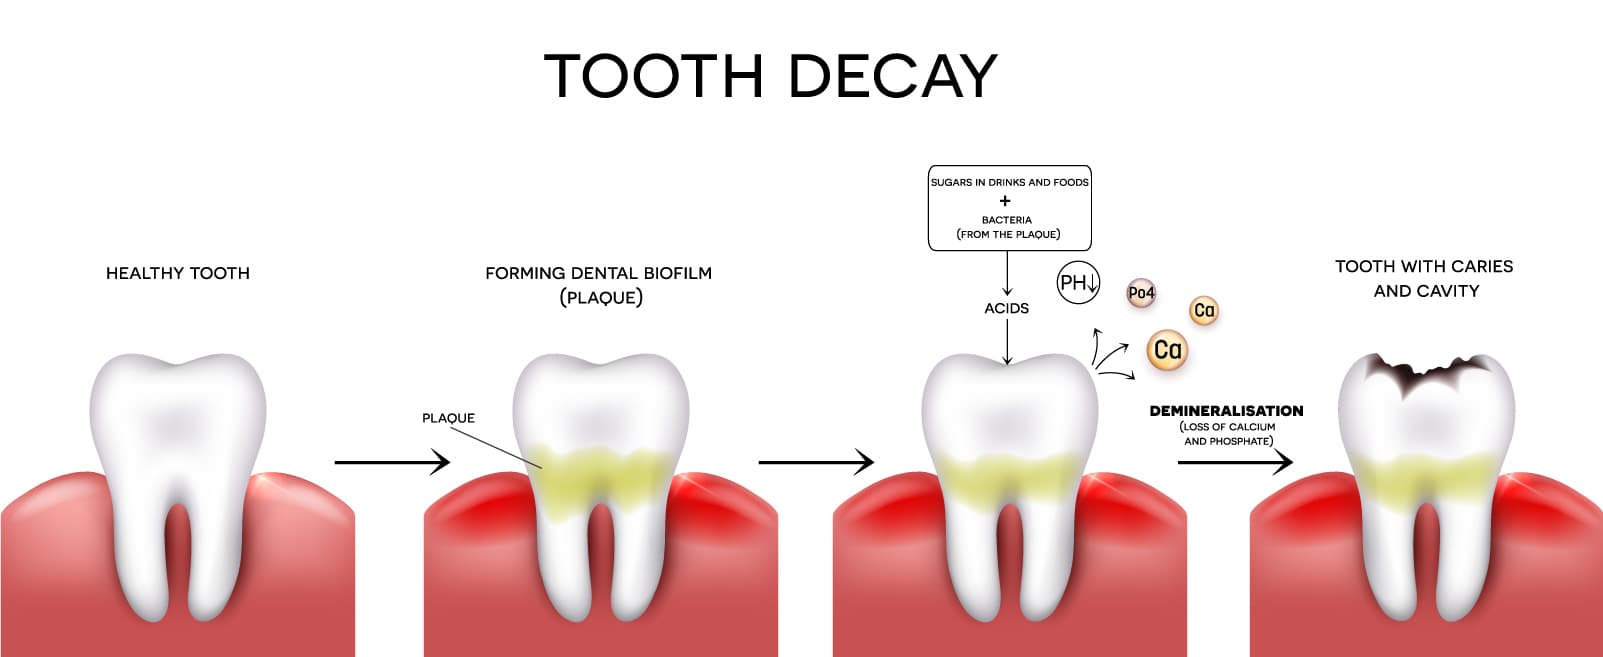 Tooth Decay diargam